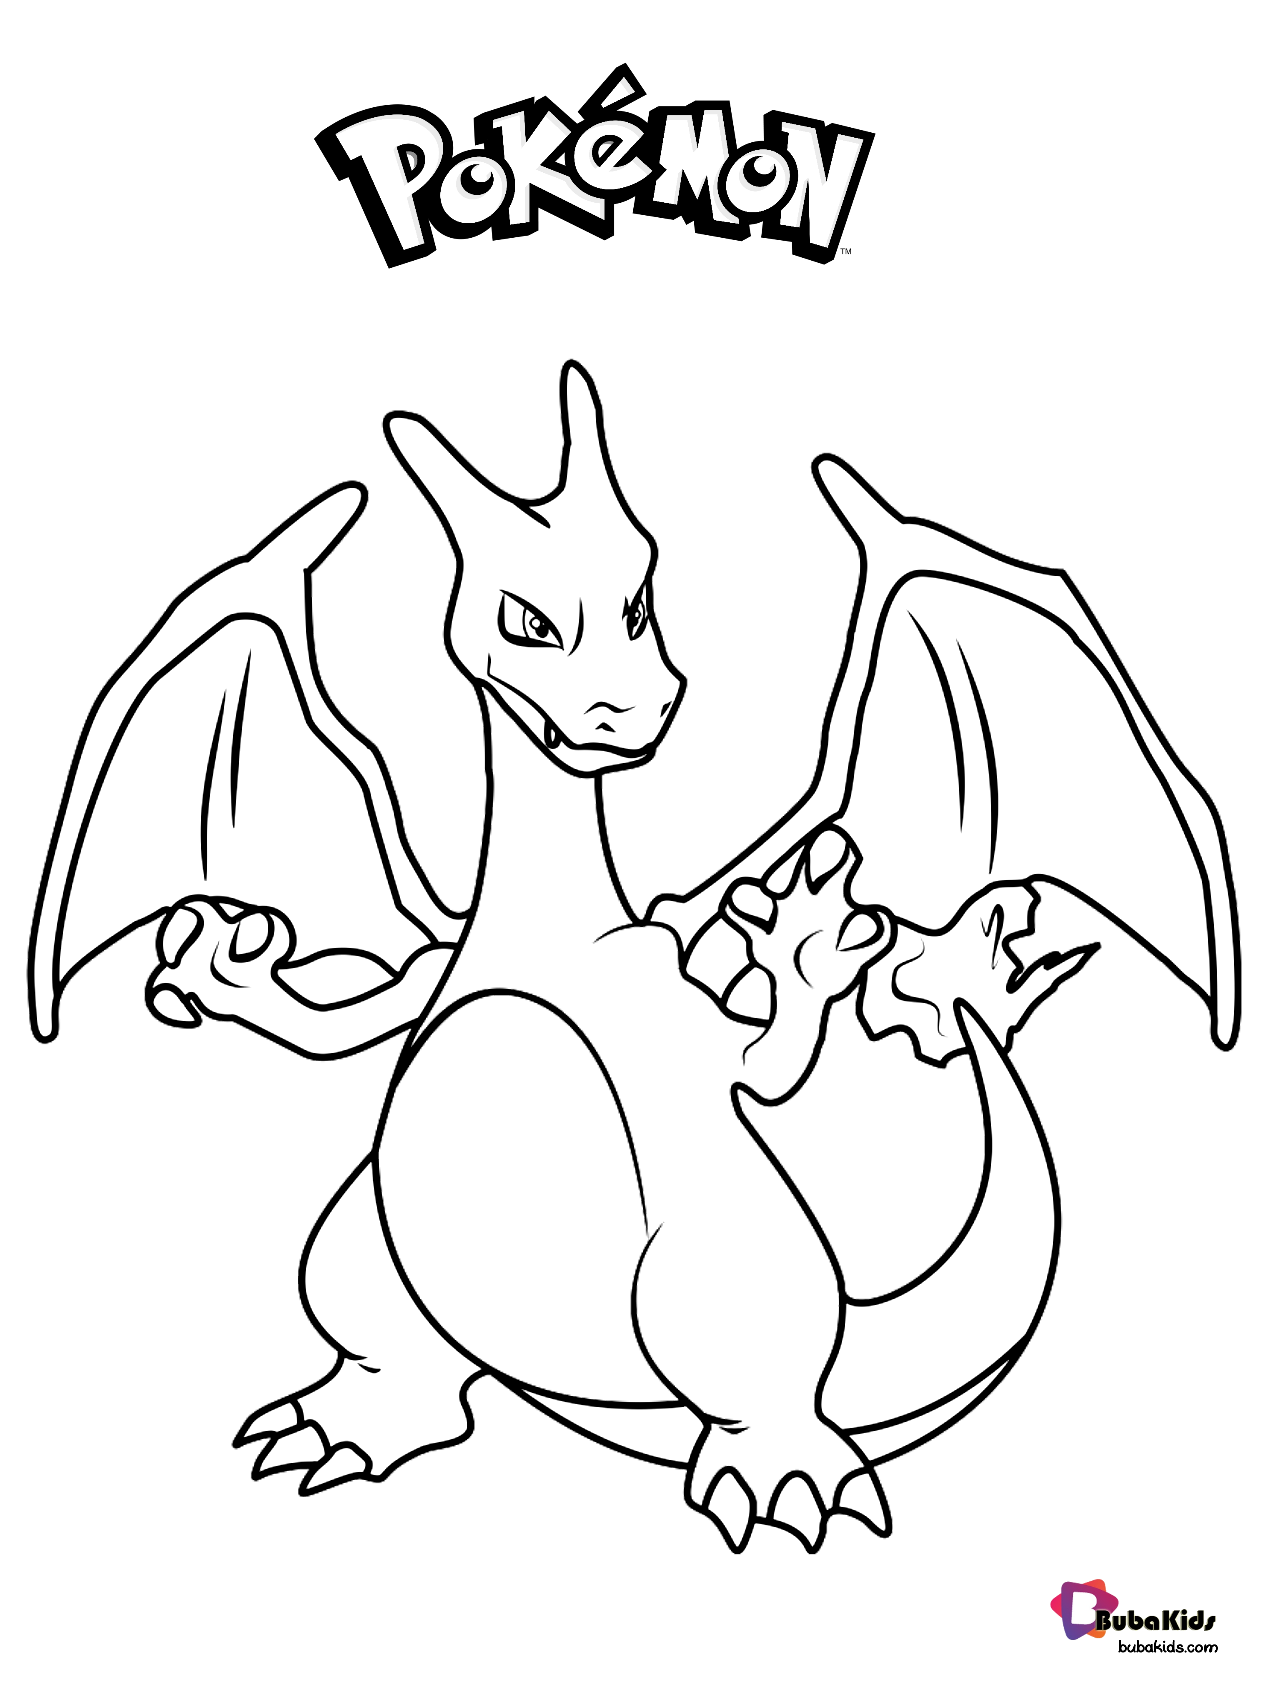 Free download to print Pokemon Charizard coloring page ...